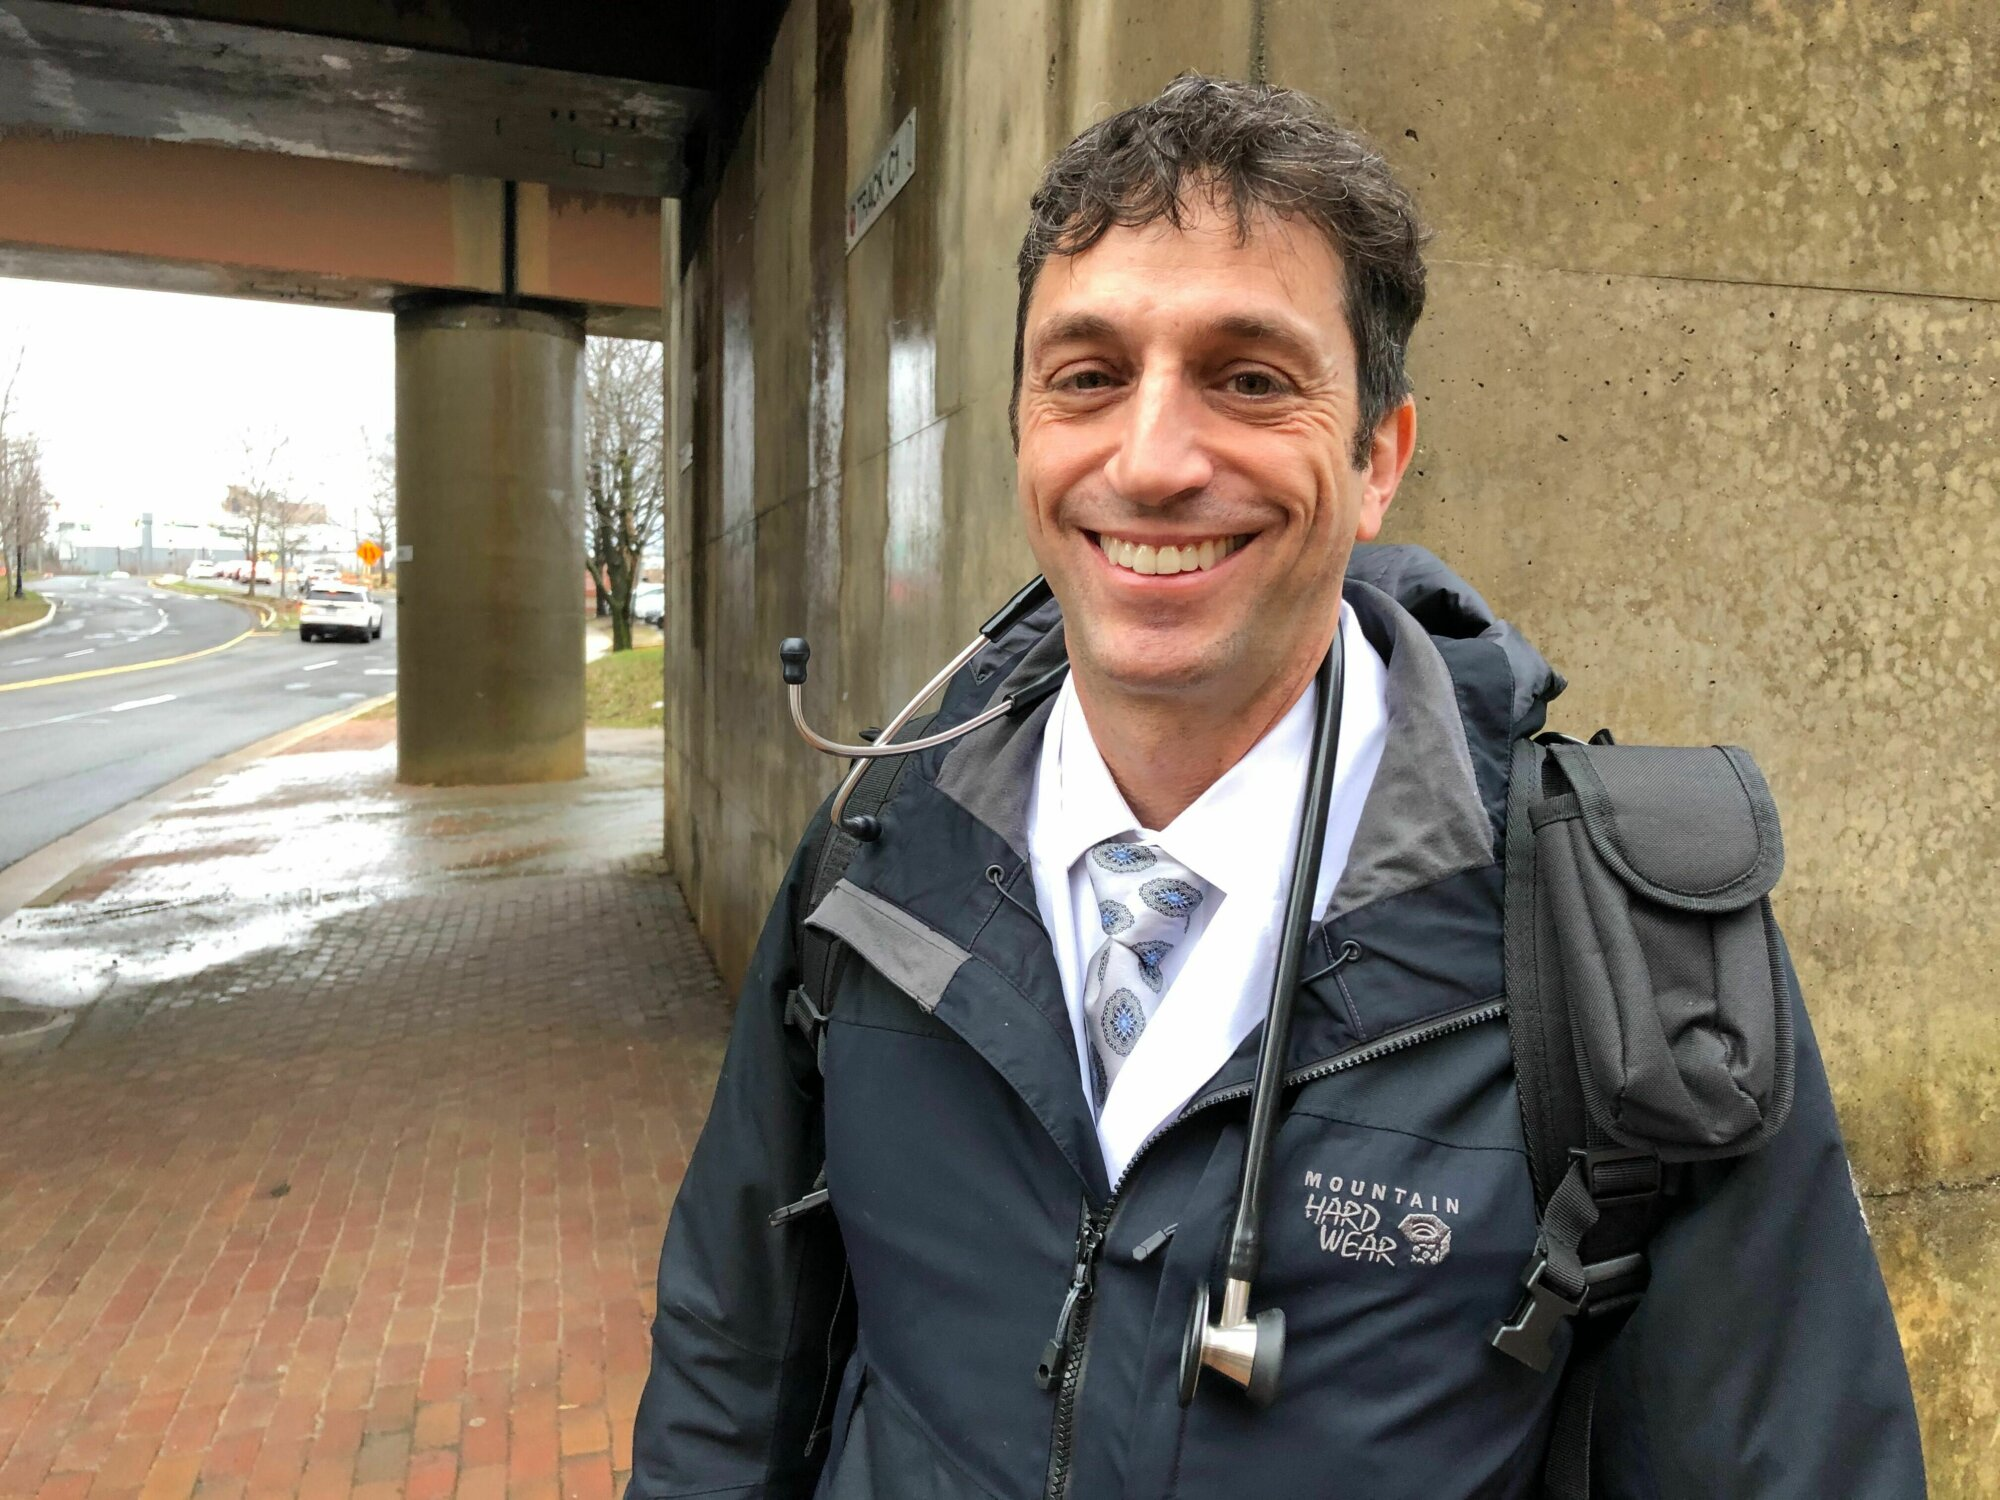 Doctor caring for homeless in Alexandria seeking donations, volunteers